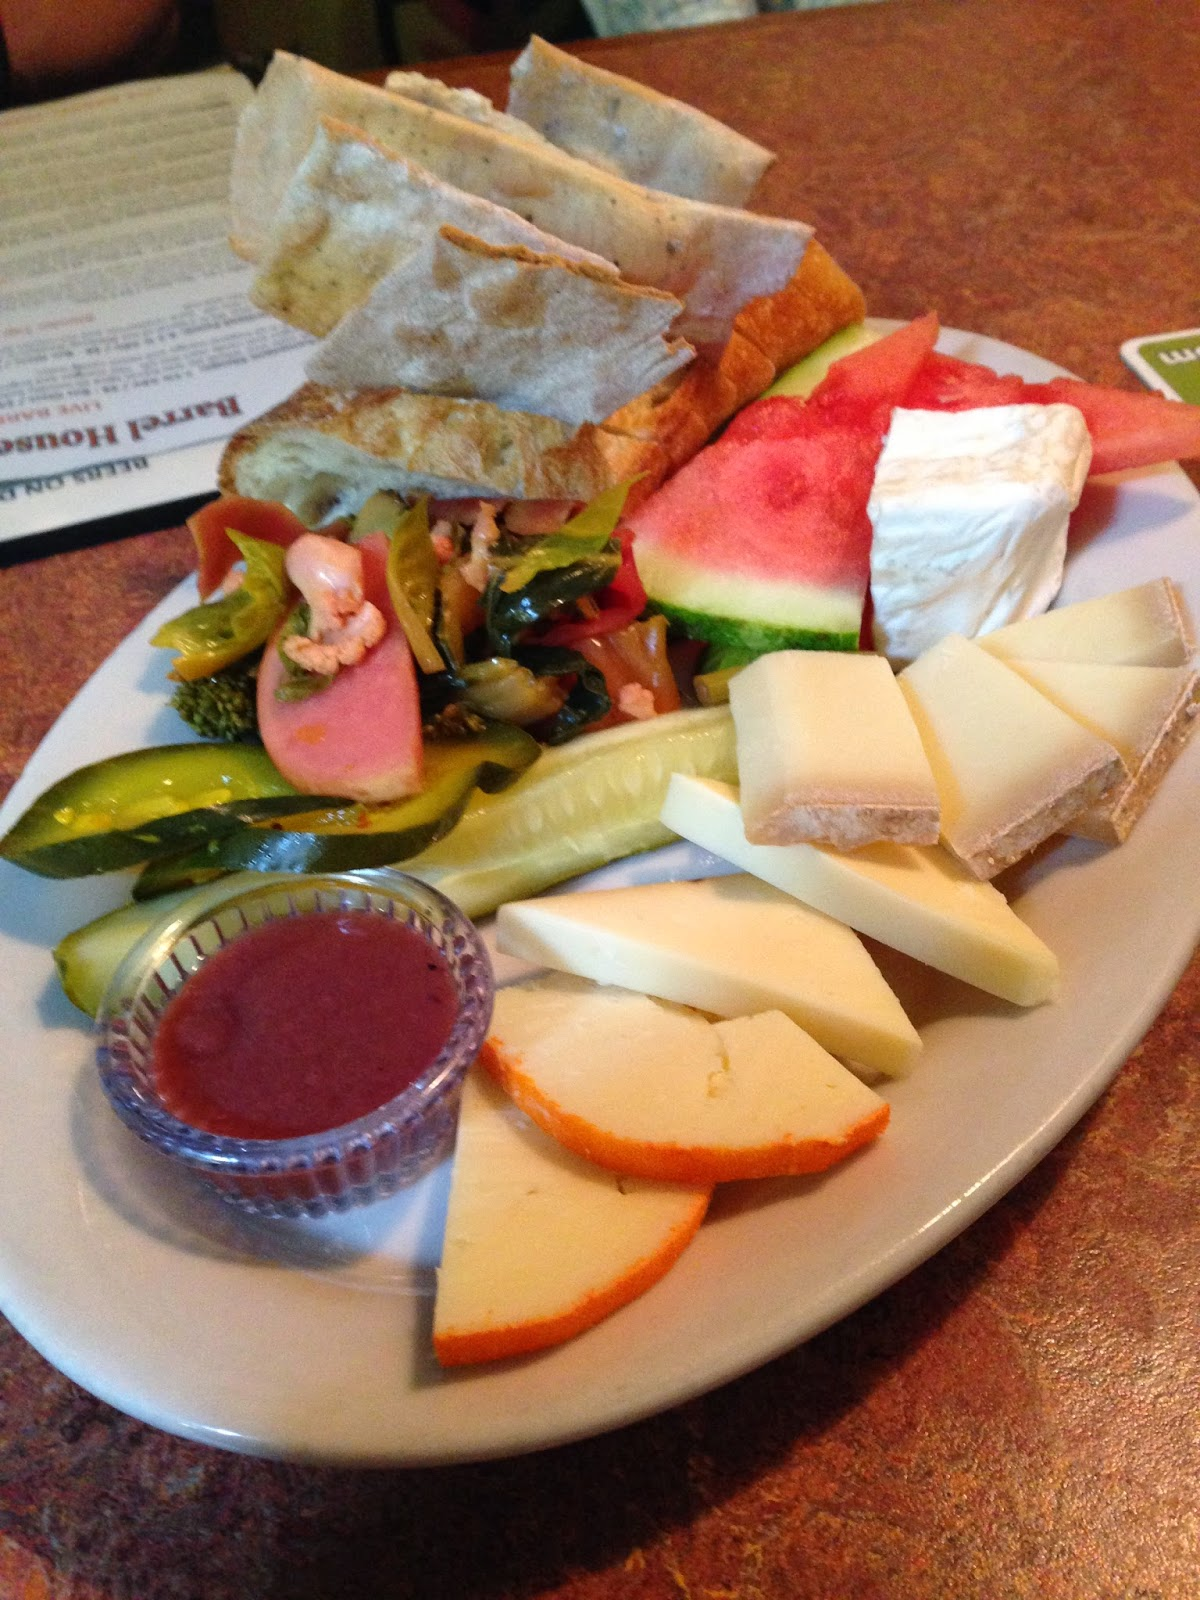 Artisanal Cheese Plate from Cascade Brewing | The Economical Eater